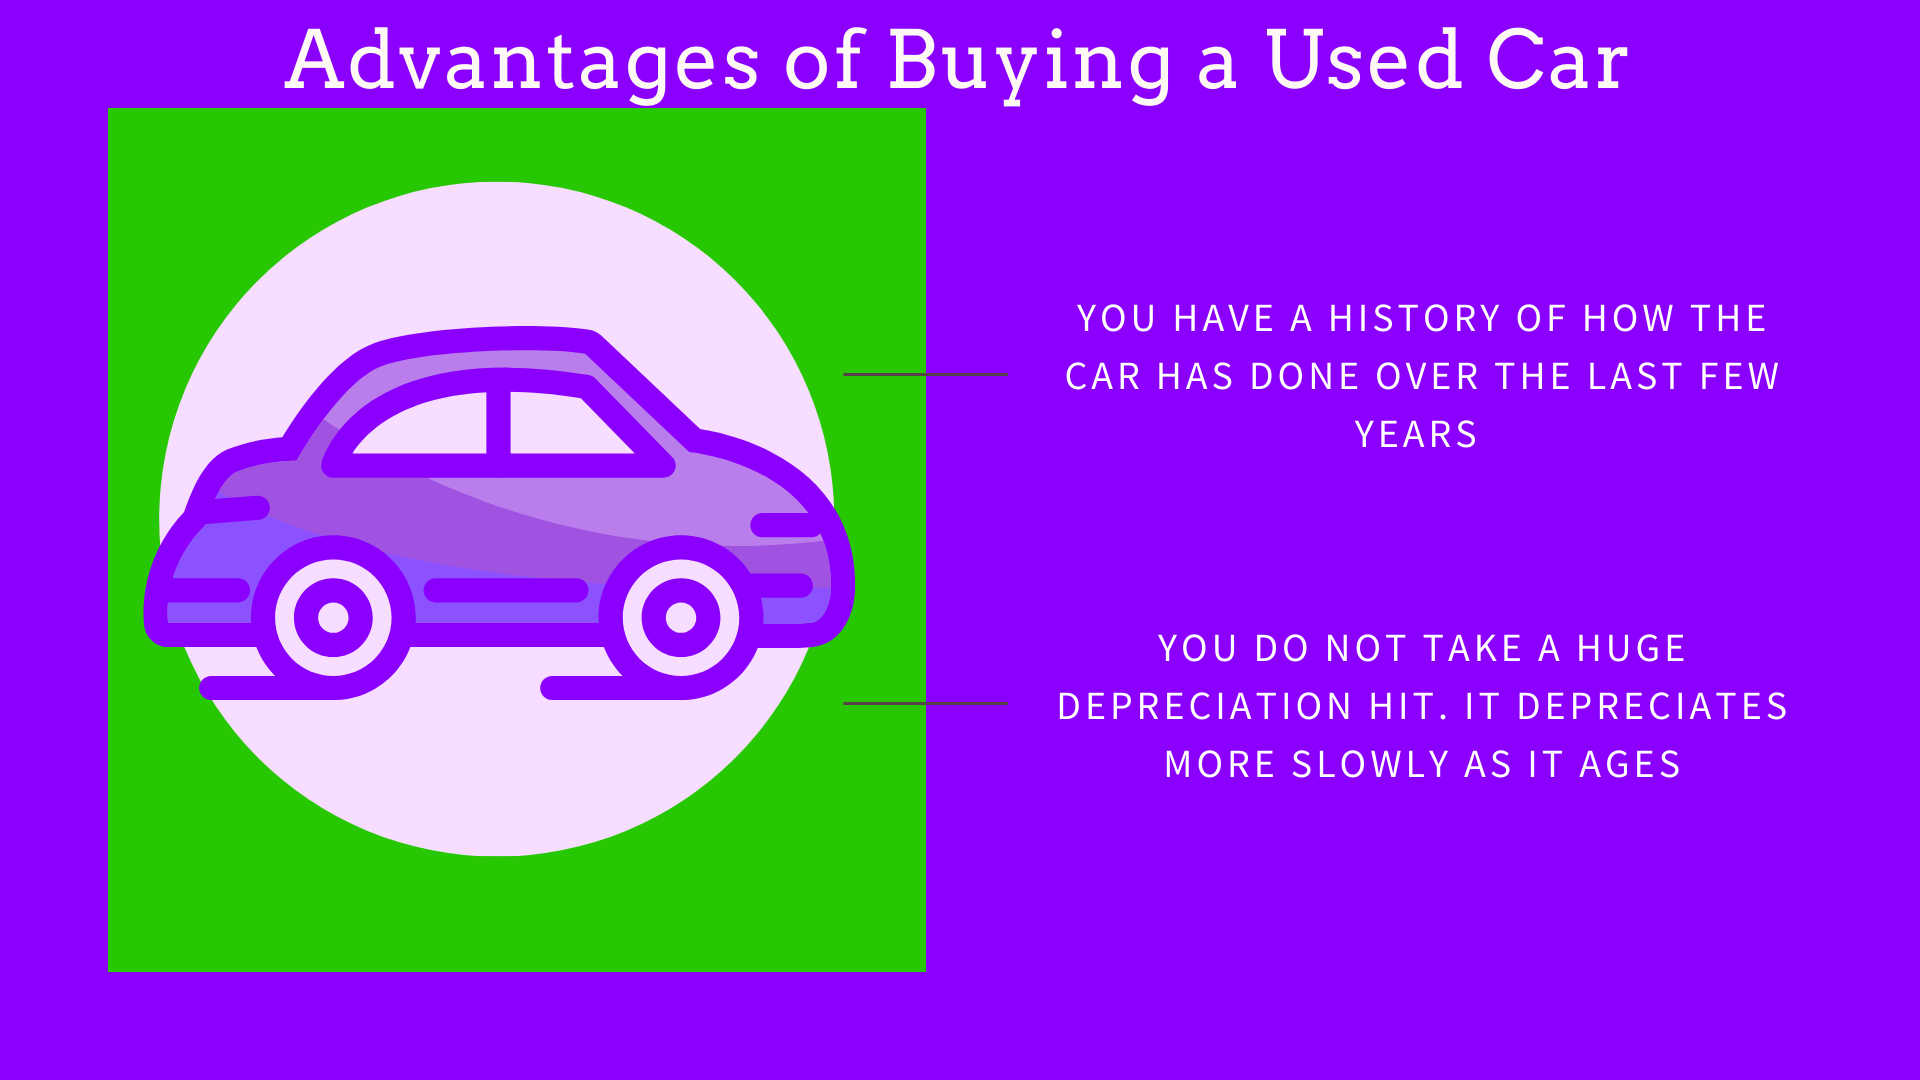 4:You have a history of how the car has done over the past few years. 5:You do not take a huge depreciation hit. It depreciates more slowly as it ages.